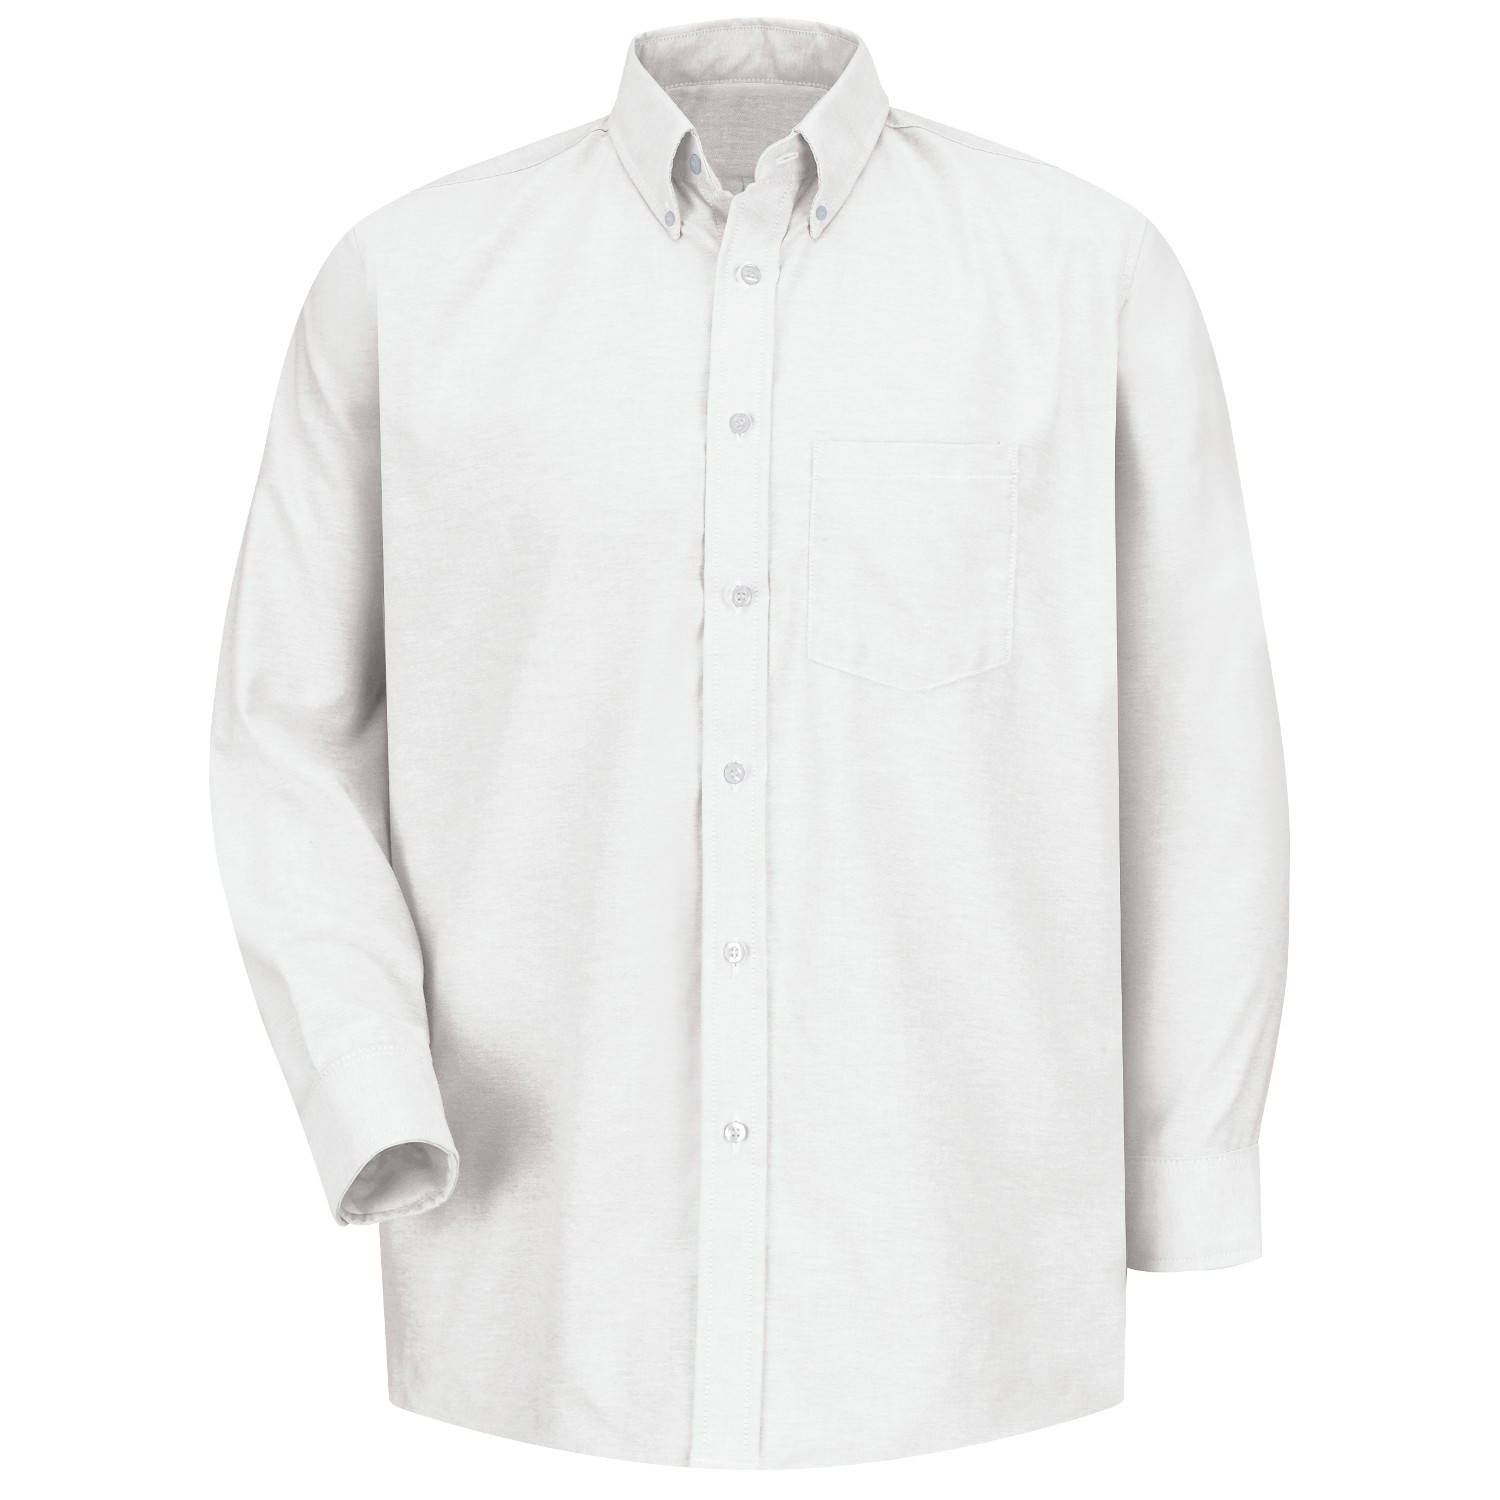 Men's Long sleeve Oxford Dress Shirt - Code 33802